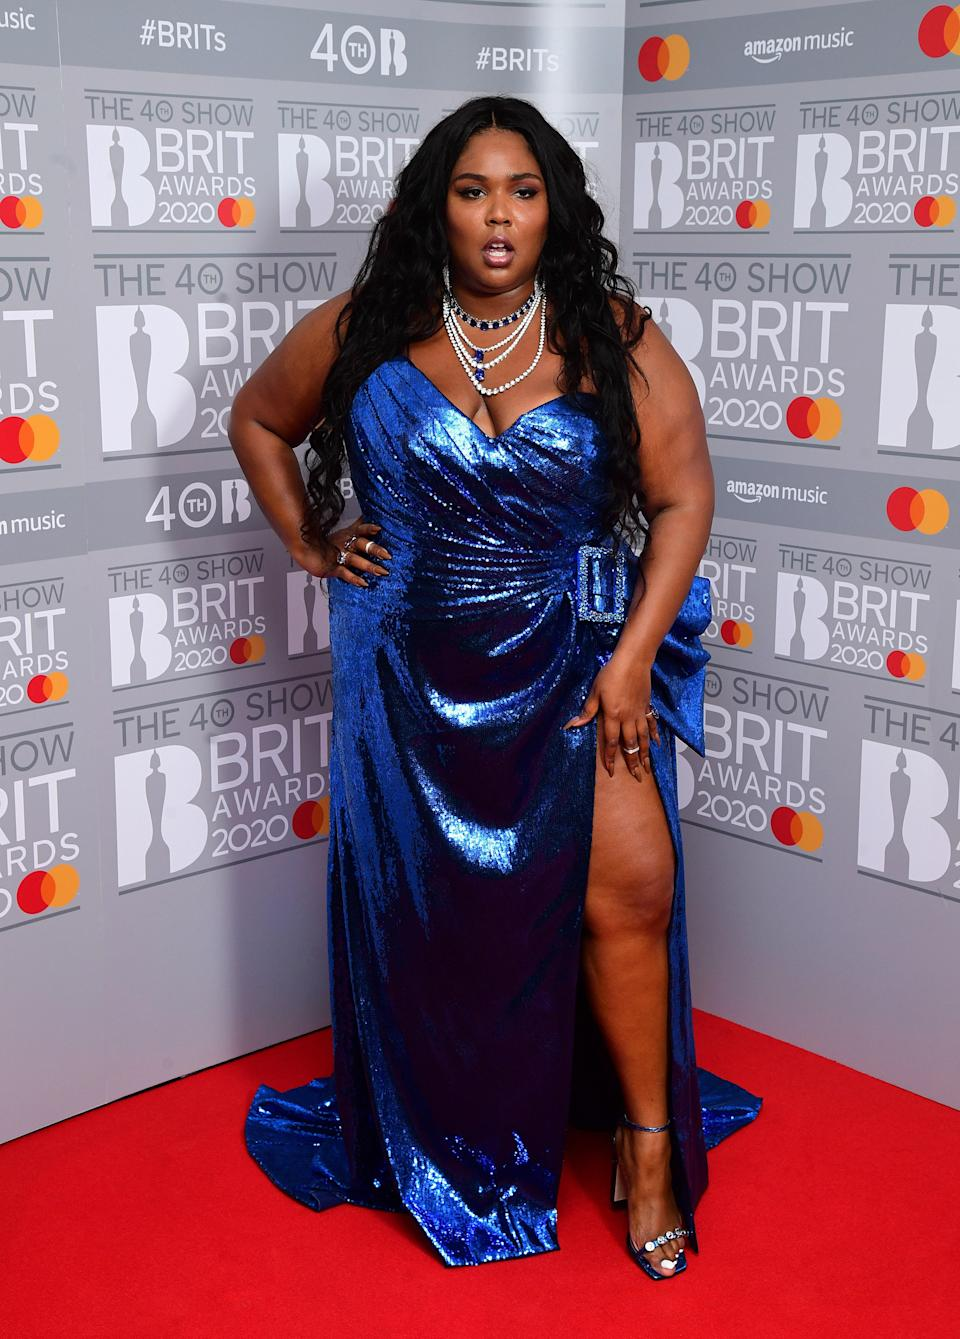 Not to be outdone by her first look, Lizzo also wowed fans at the BRIT Awards Pressroom with a sparkly blue gown from the Dundas Spring 2020 collection.